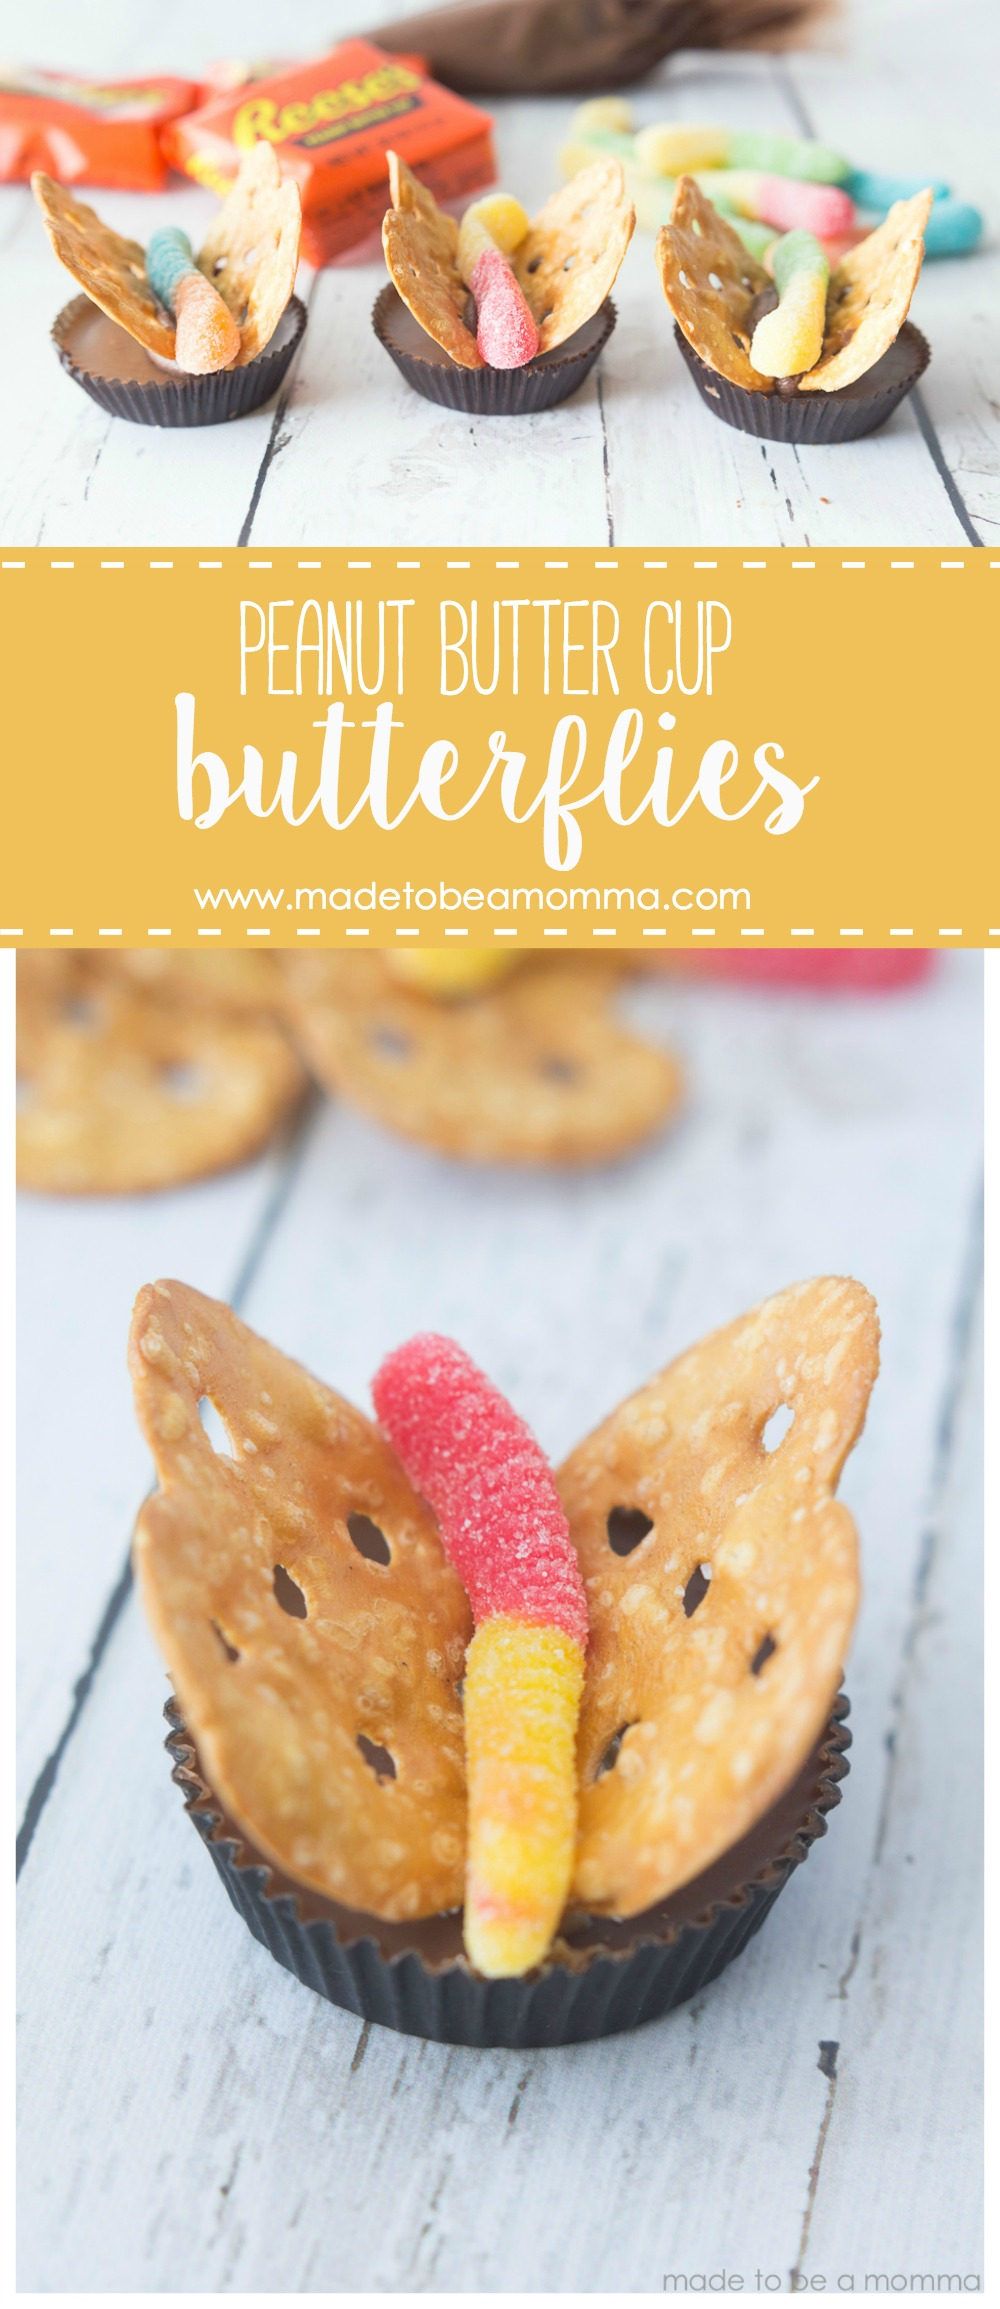 Peanut Butter Cup Butterflies are the perfect kids treats to welcome spring!